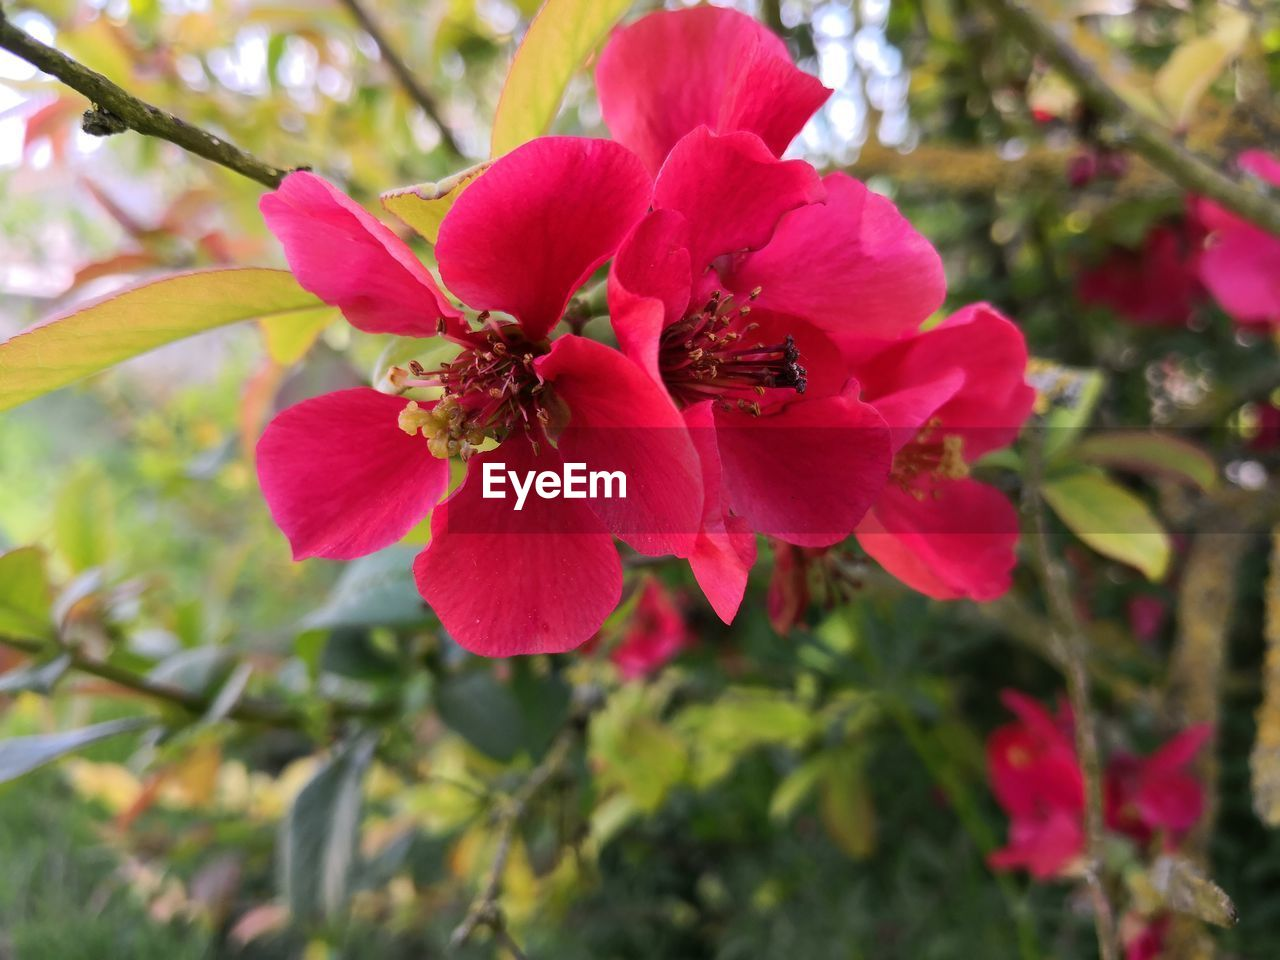 flowering plant, flower, fragility, plant, vulnerability, beauty in nature, growth, petal, freshness, close-up, invertebrate, flower head, animal themes, insect, animal, one animal, inflorescence, animal wildlife, animals in the wild, bee, no people, pollen, pollination, outdoors